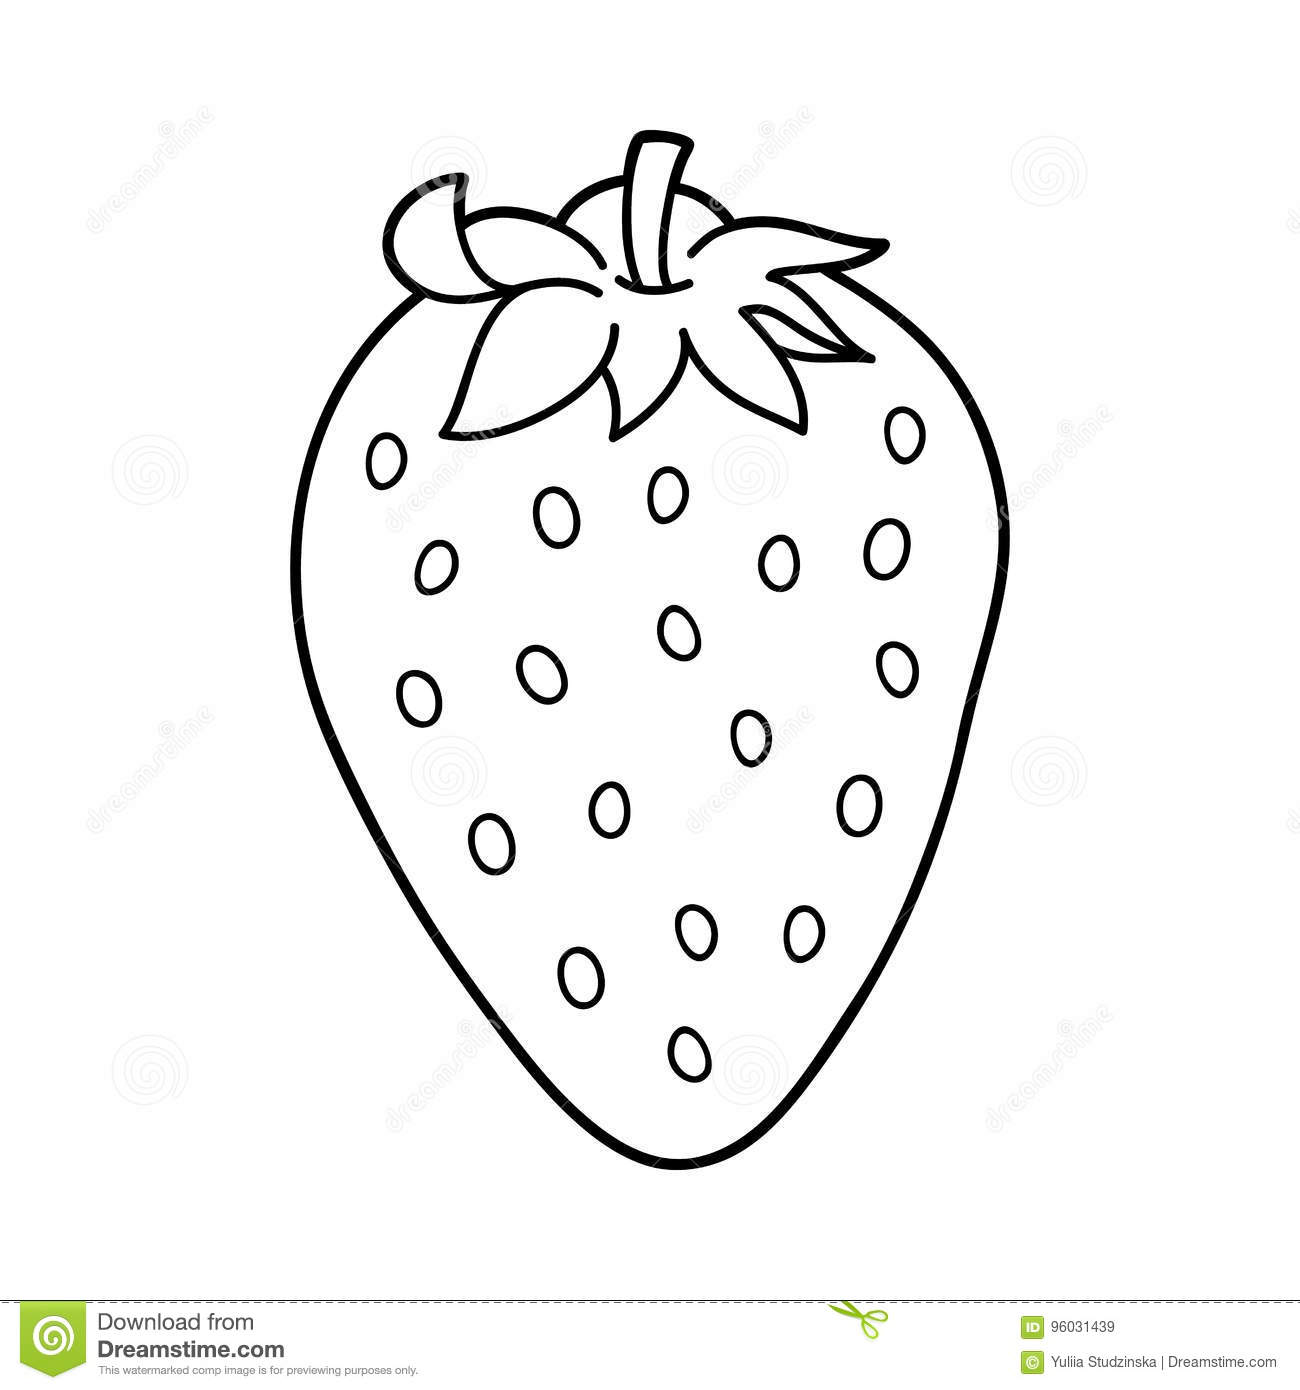 Cartoon Strawberry Outlines Stock Vector - Illustration of ...